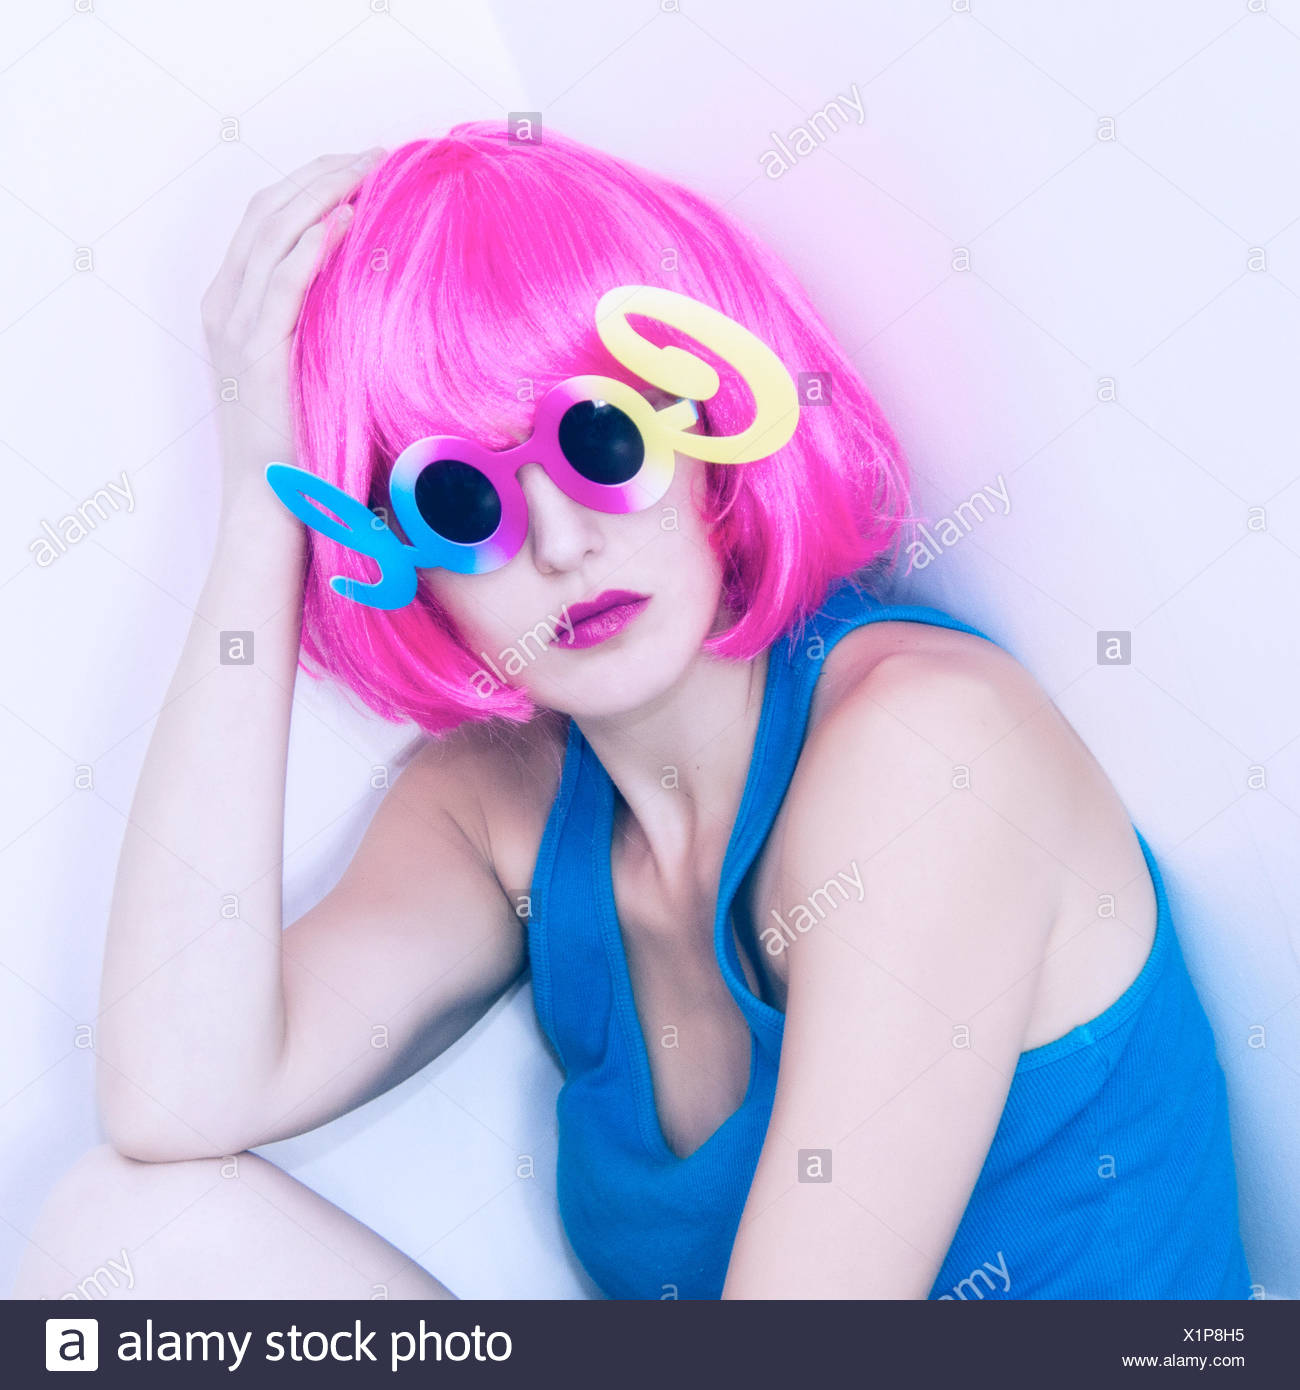 Portrait of a Woman in pink wig and cool sunglasses - Stock Image